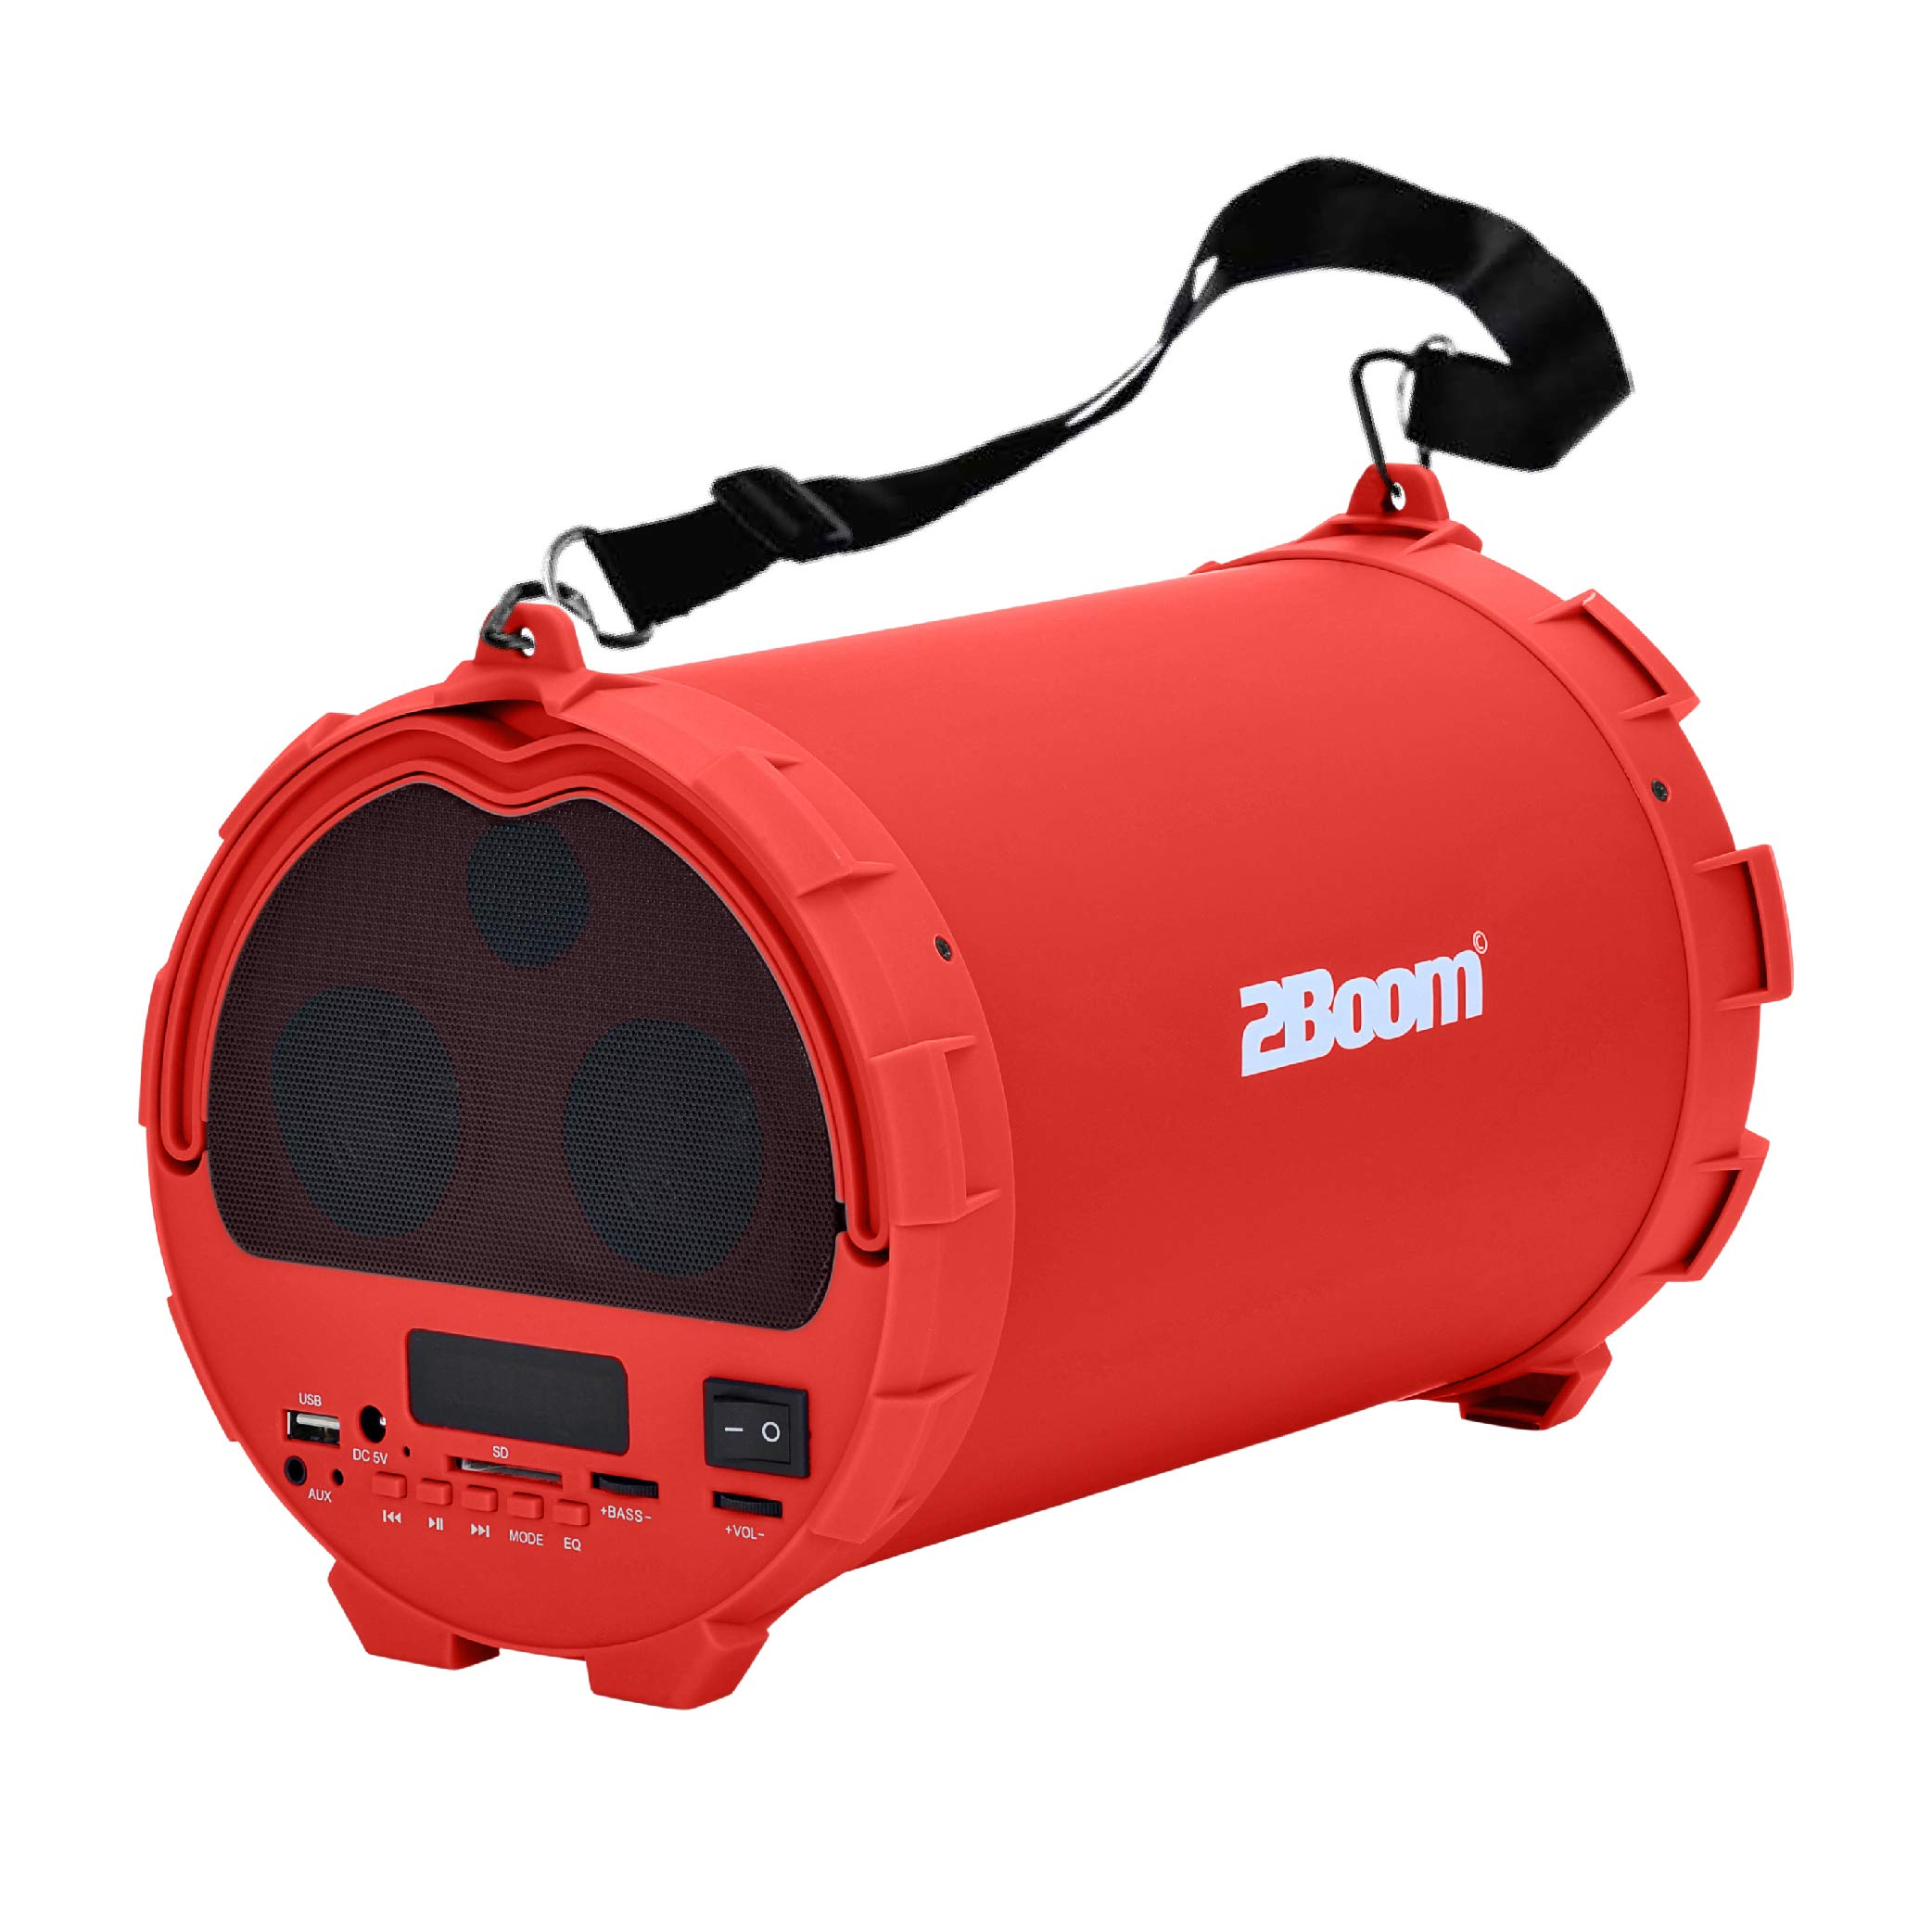 2BOOM Bass King Wireless Bluetooth Portable Outdoor Speaker with FM Radio  LED Display - Red